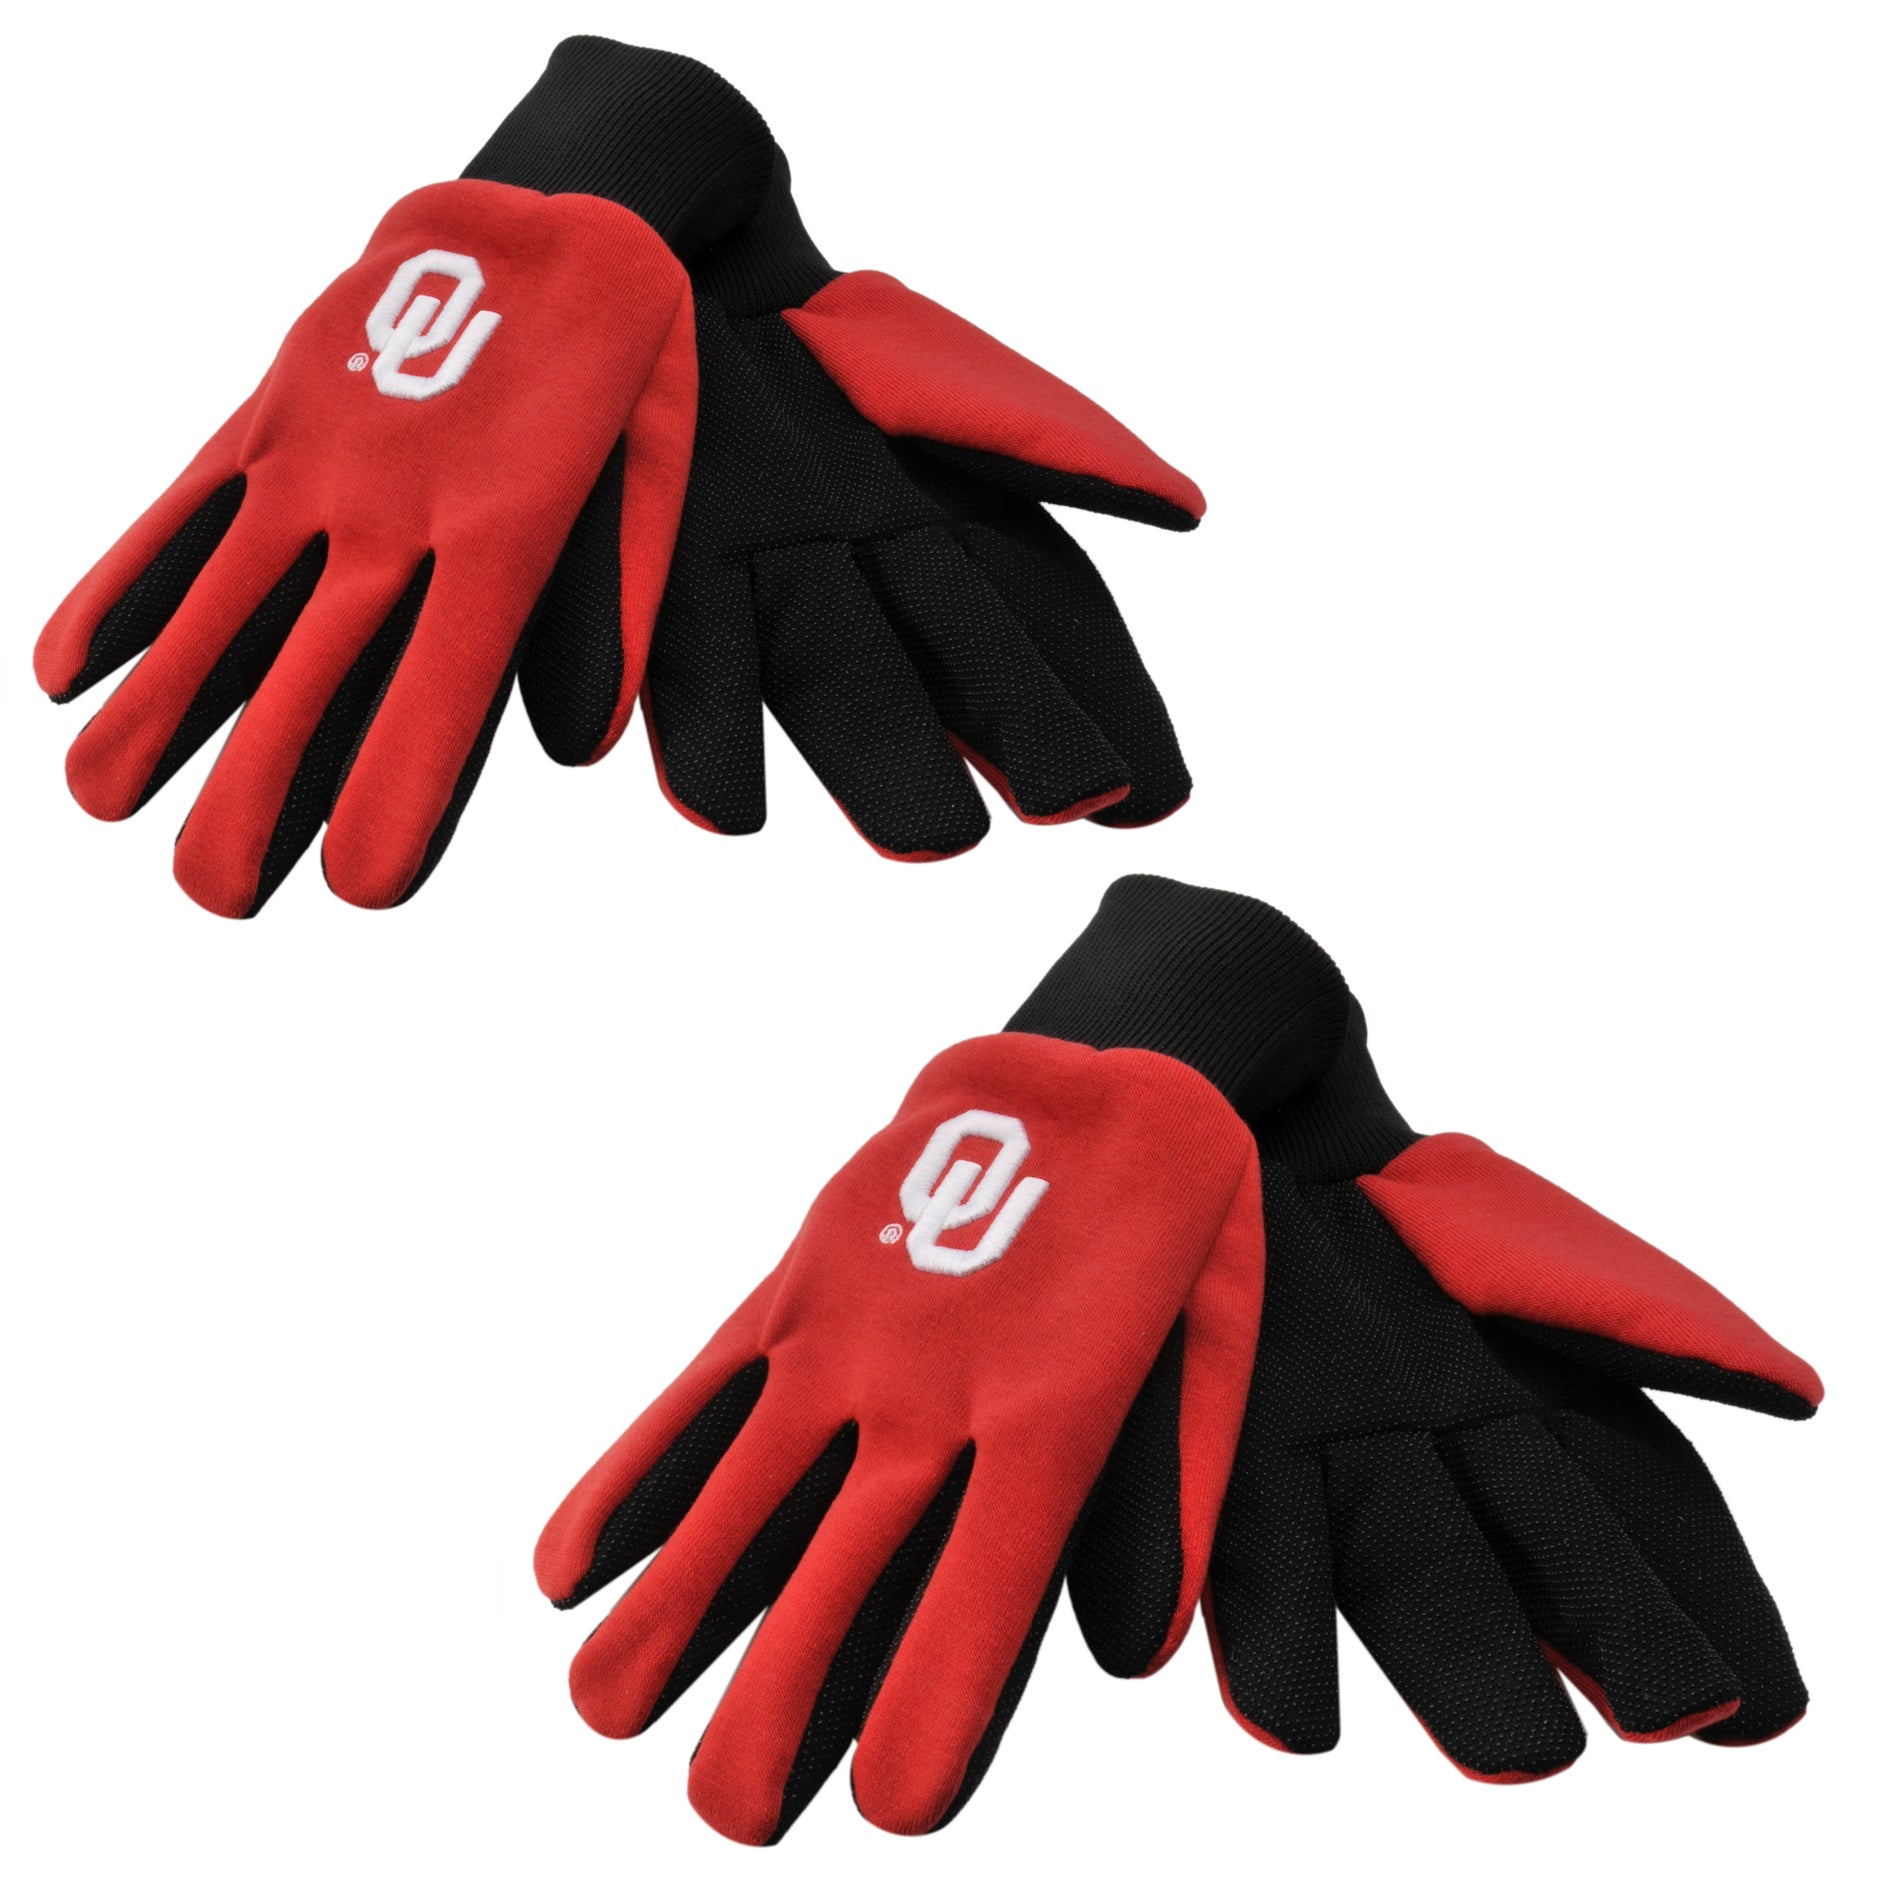 Oklahoma Sooners Two-tone Gloves (Set of 2 Pair)